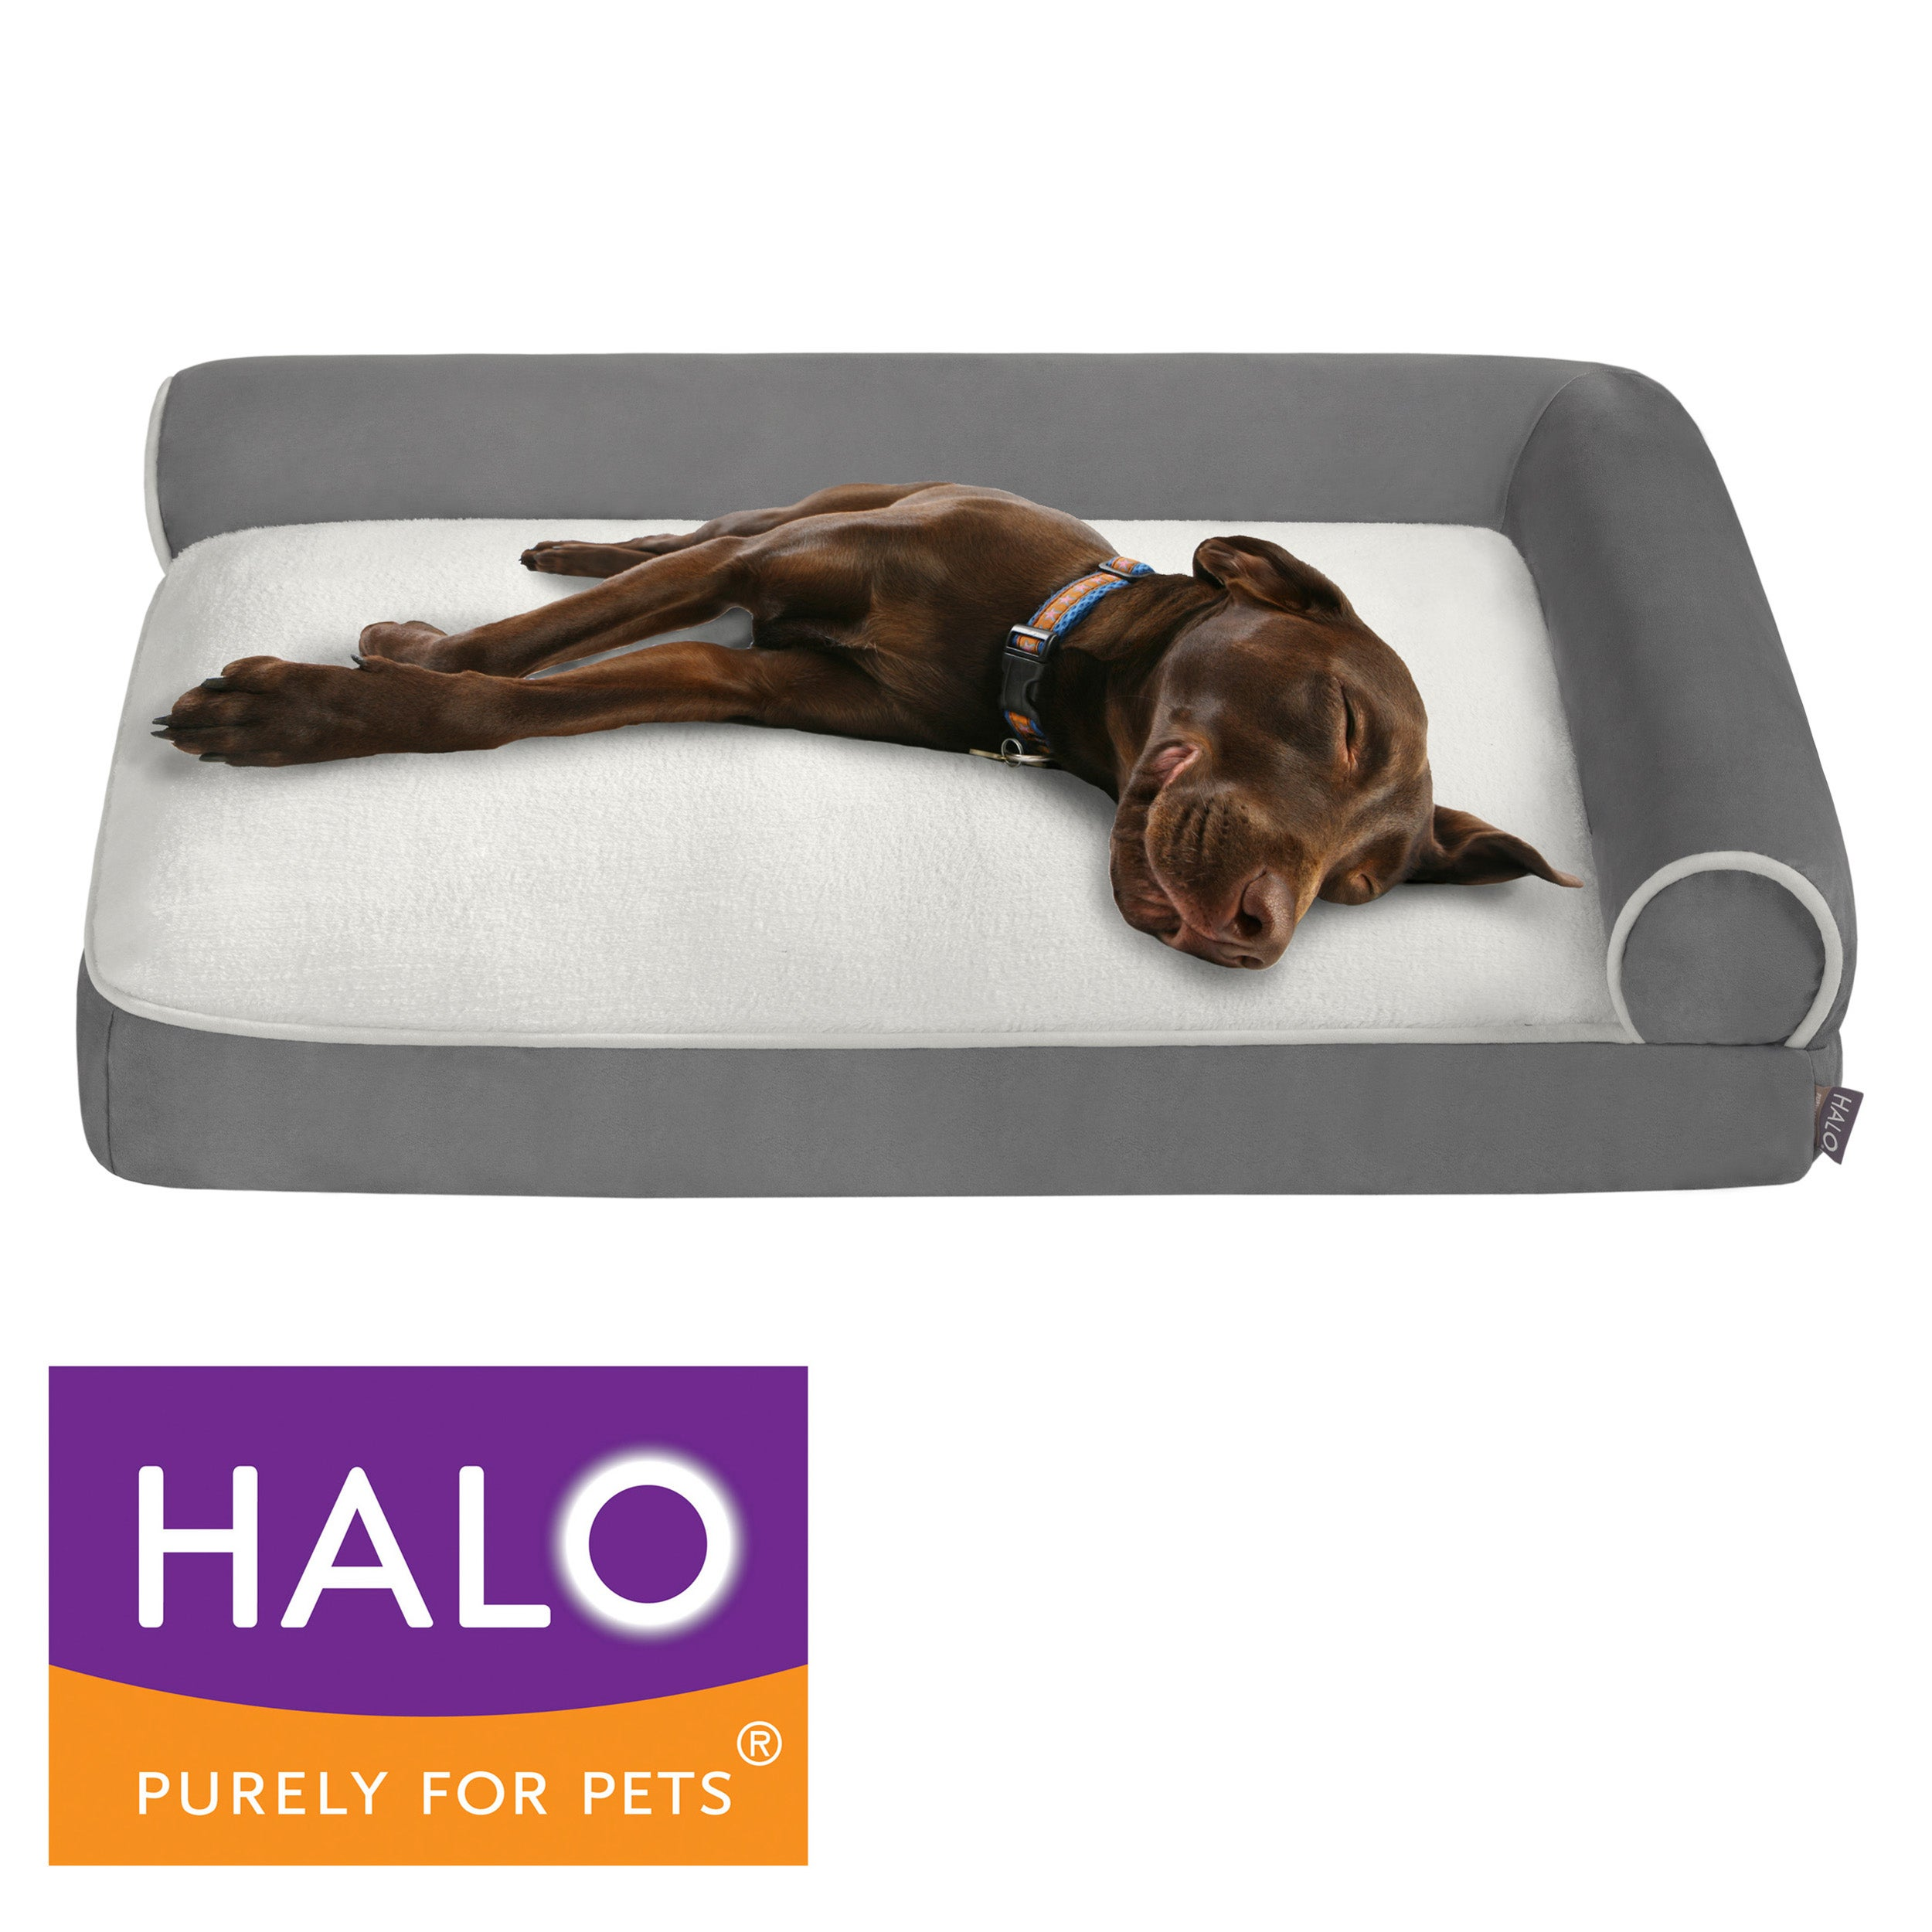 HALO Medium Right Angle Bolster Lounger Free Shipping Today